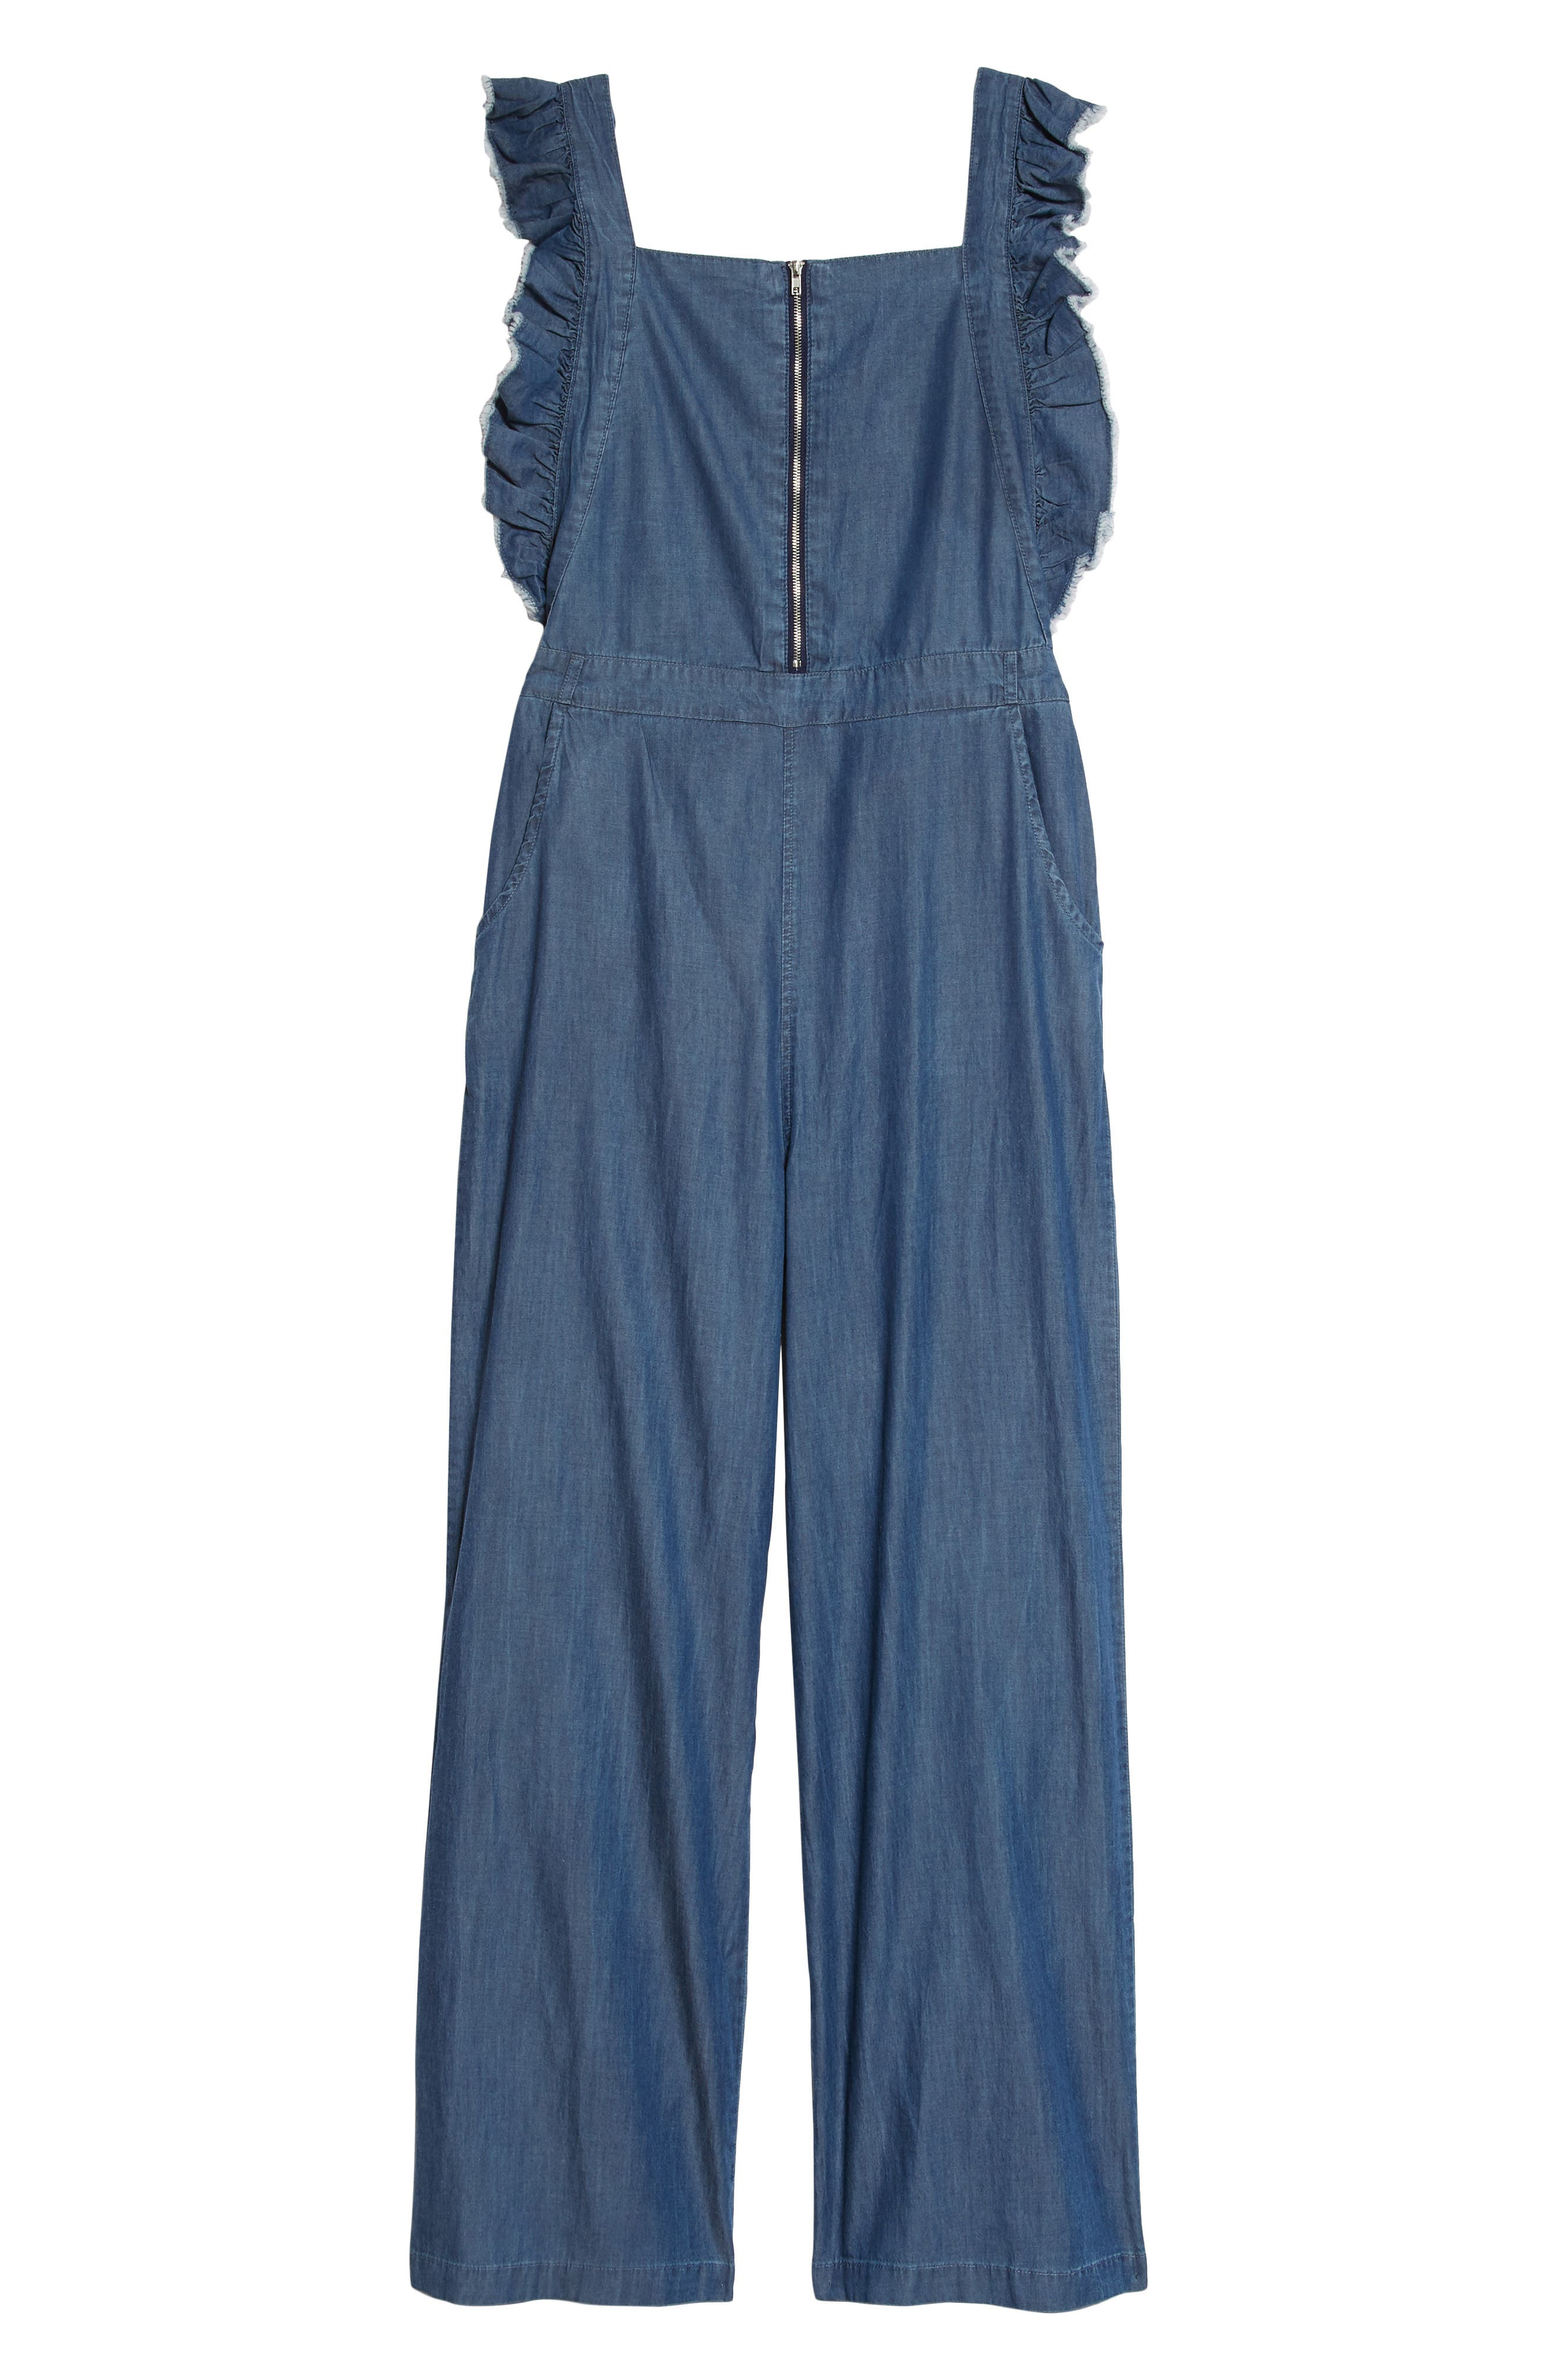 Ruffle Sleeve Denim Jumpsuit,                             Main thumbnail 1, color,                             Denim